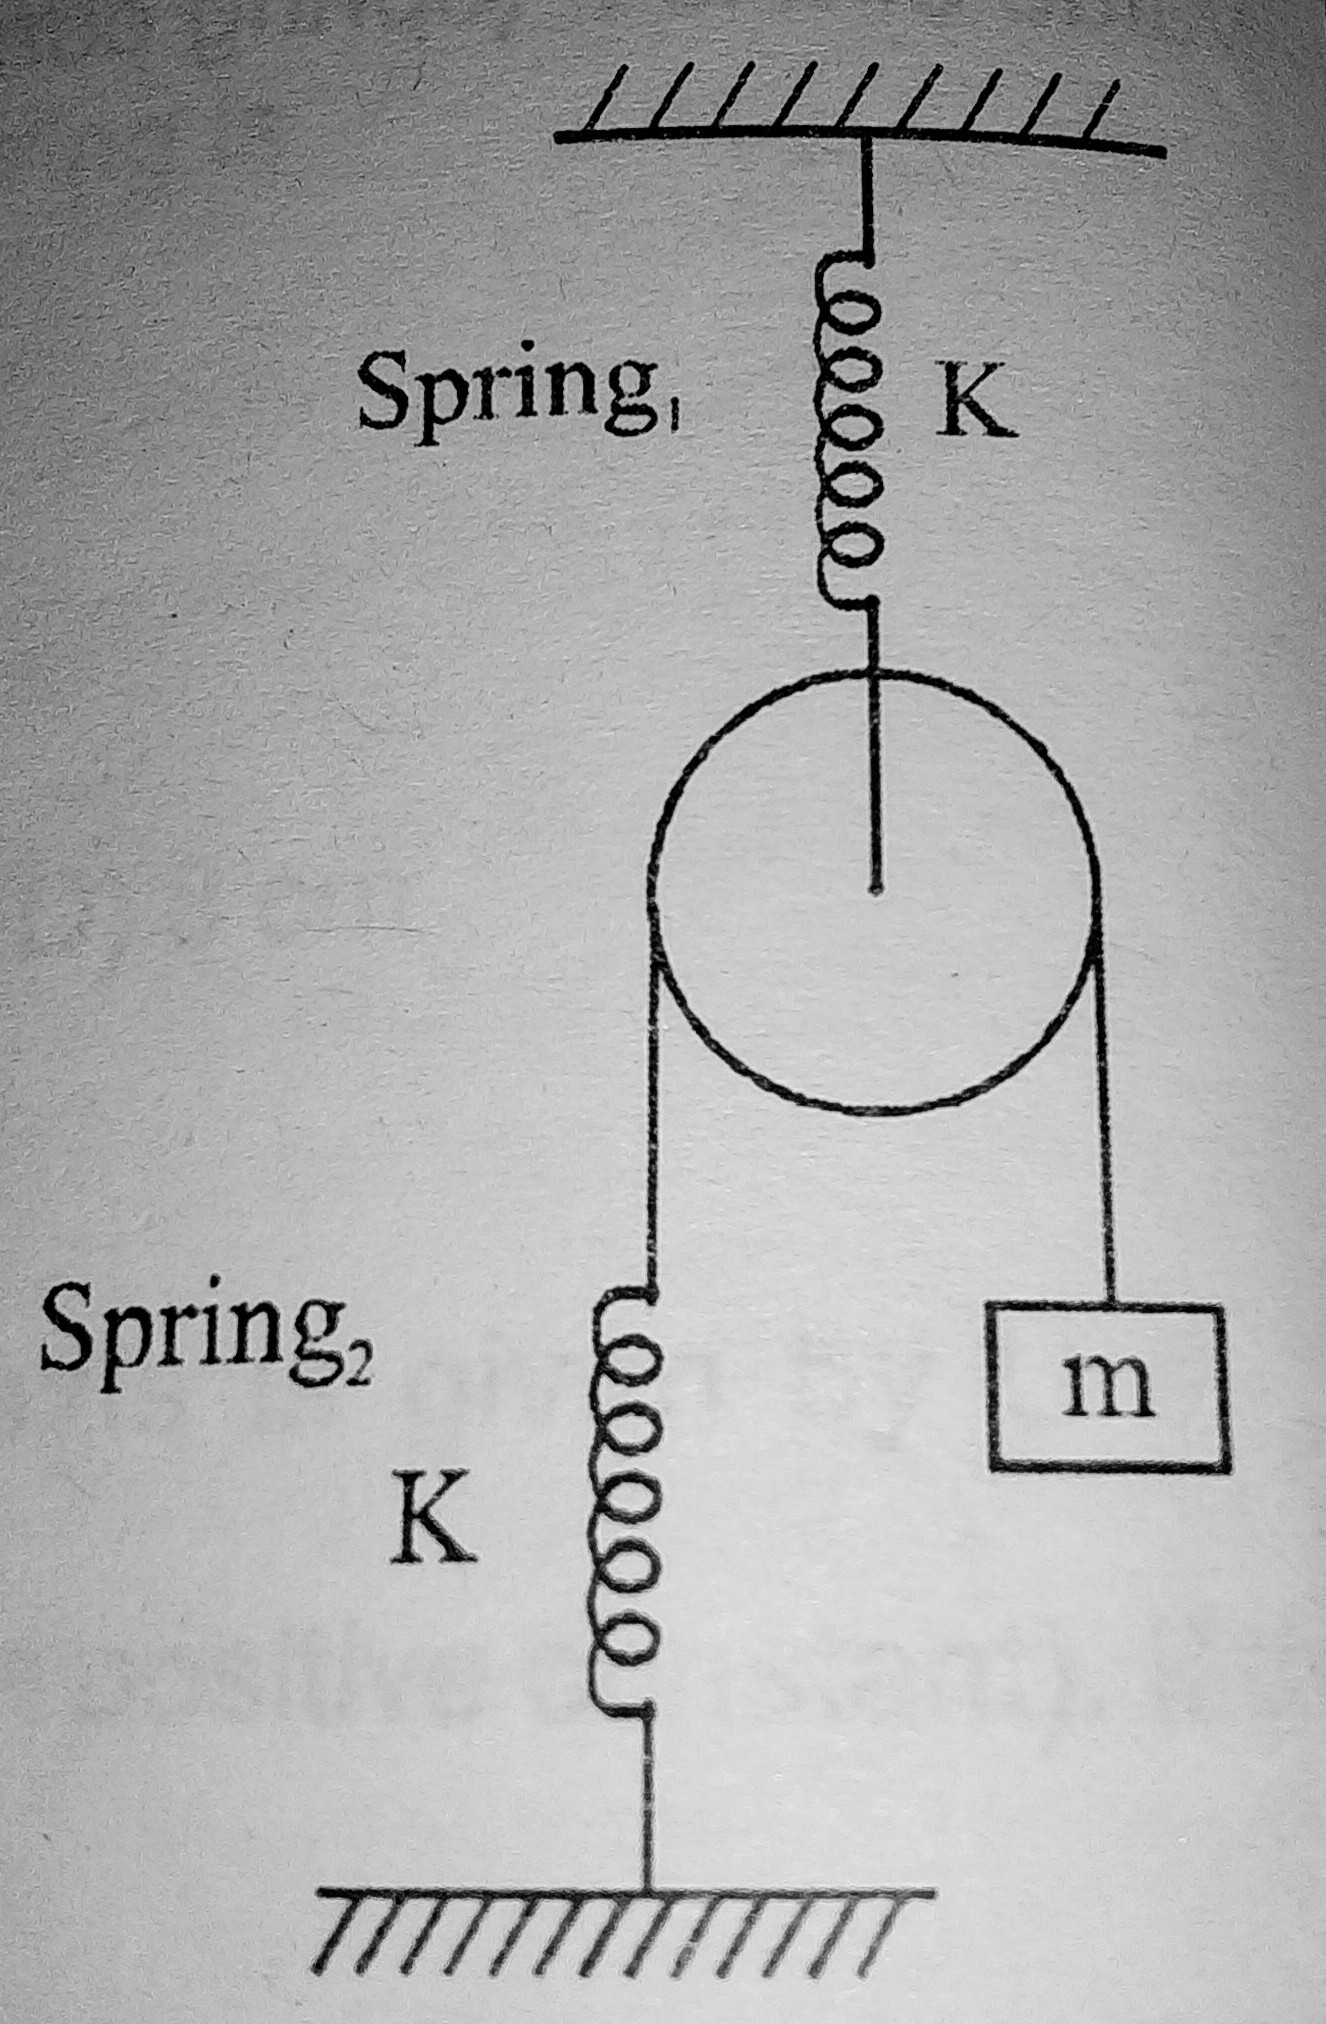 hight resolution of i have tried drawing a free body diagram supposing x elongation in spring 1 x elongation in spring 2